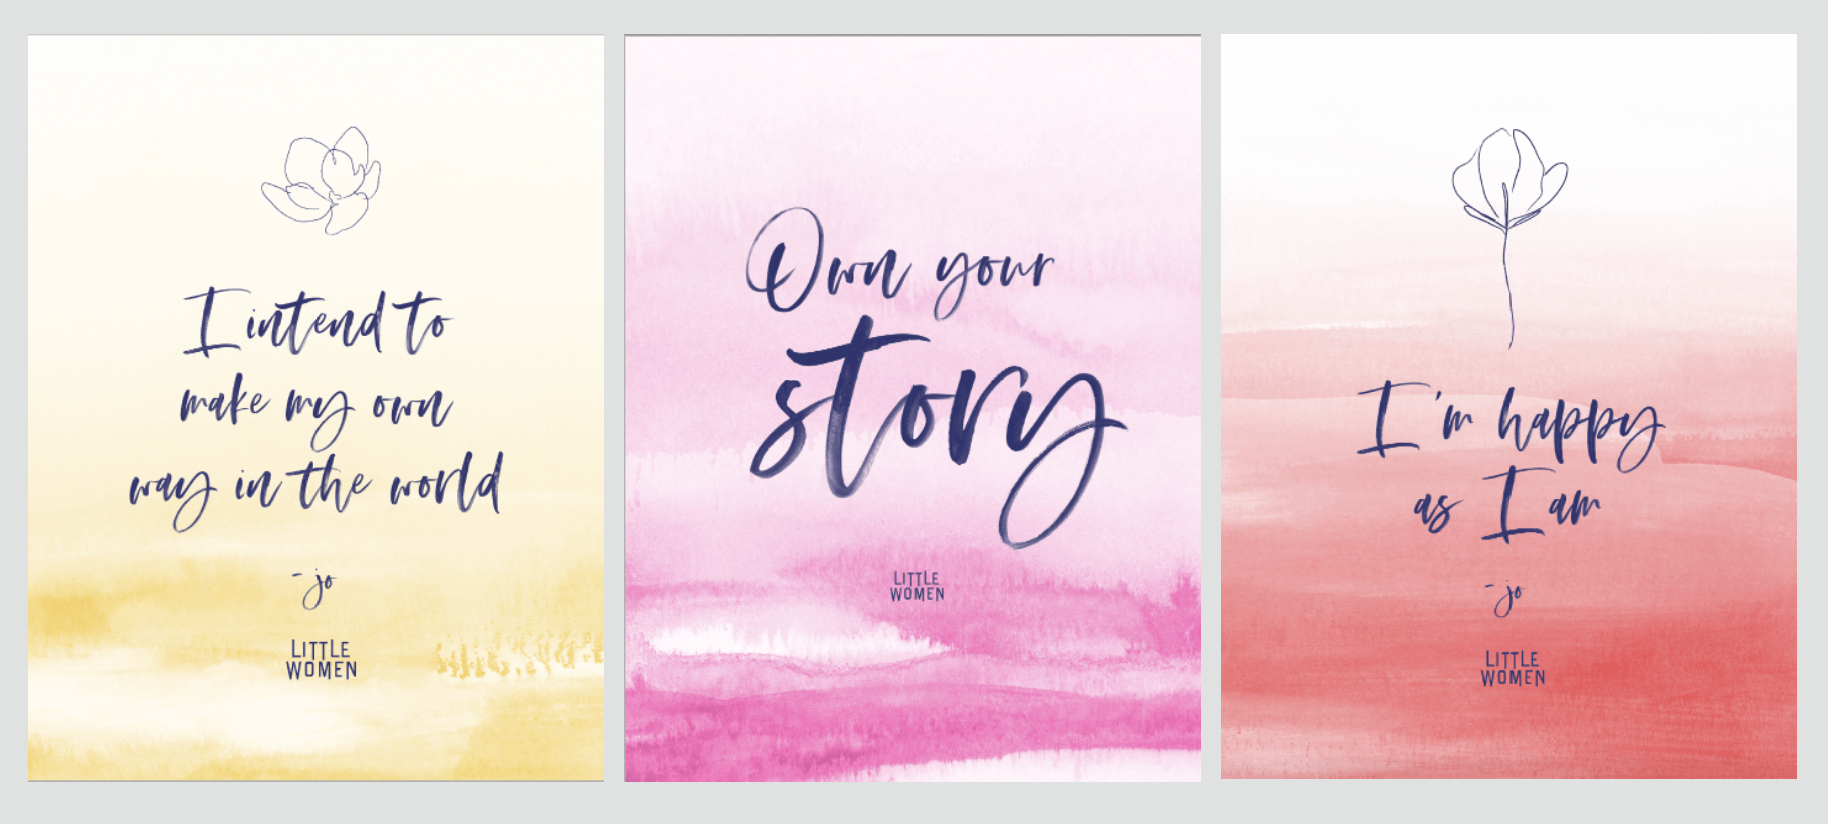 3 - Little Women movie quotes framed and stationery - Annie Johnson, Design Love Life